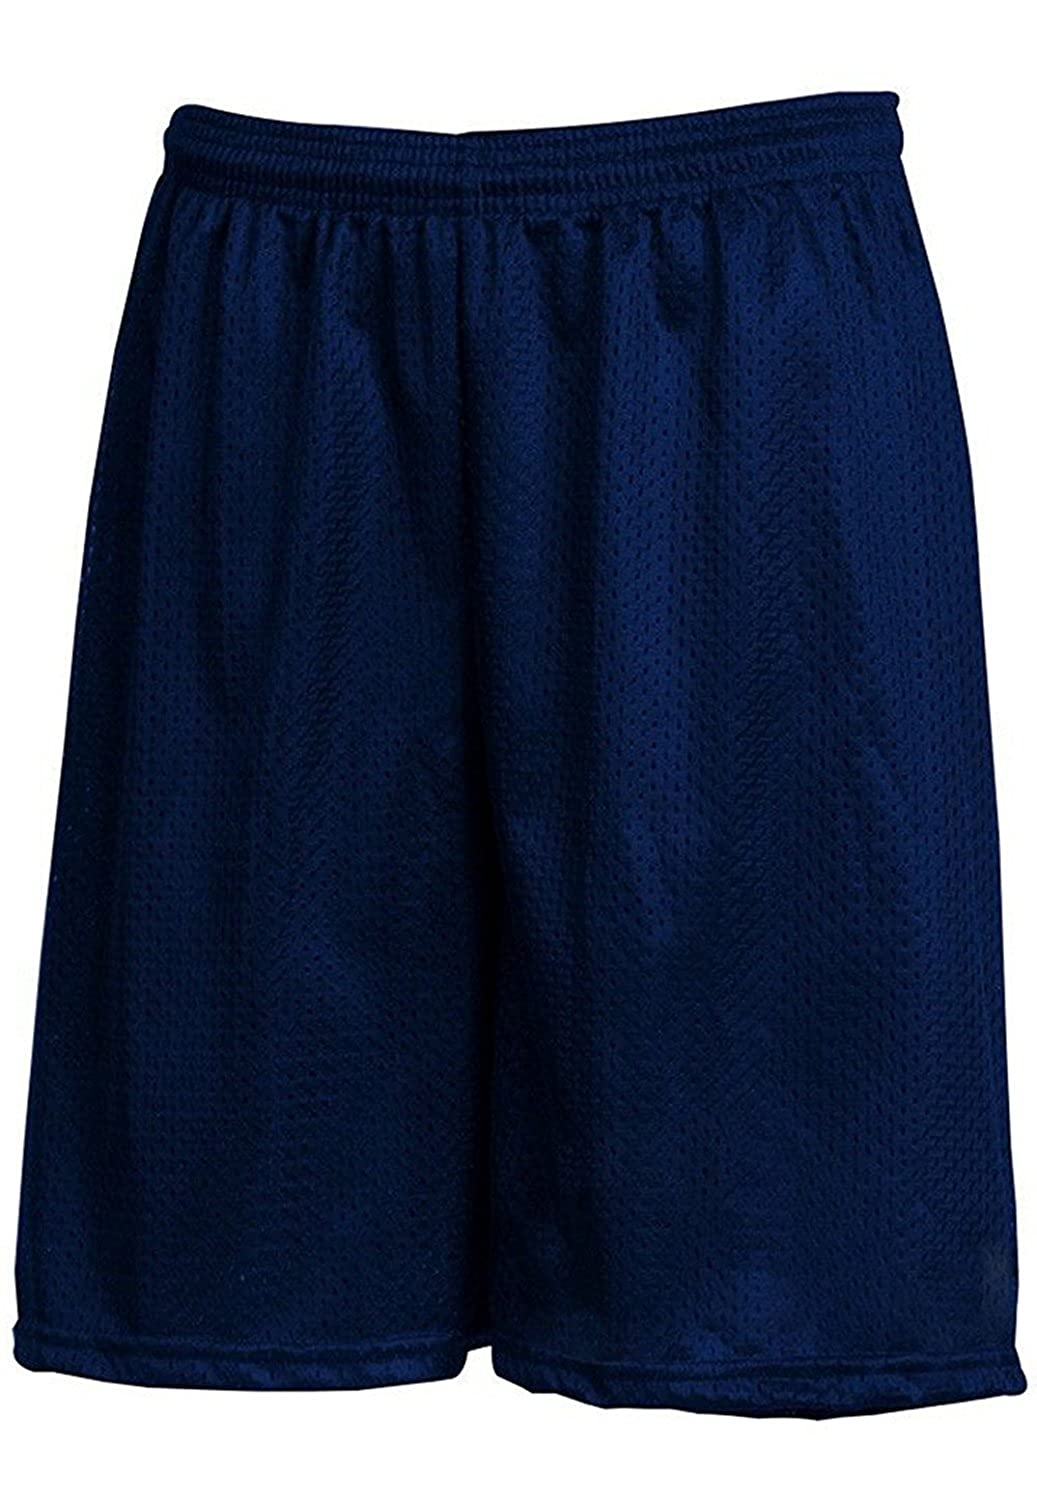 Navy 4X-Large Hat and Beyond Mens Athletic Mesh Shorts Jersey Sports Basketball Gym Active S-5xl 5oz